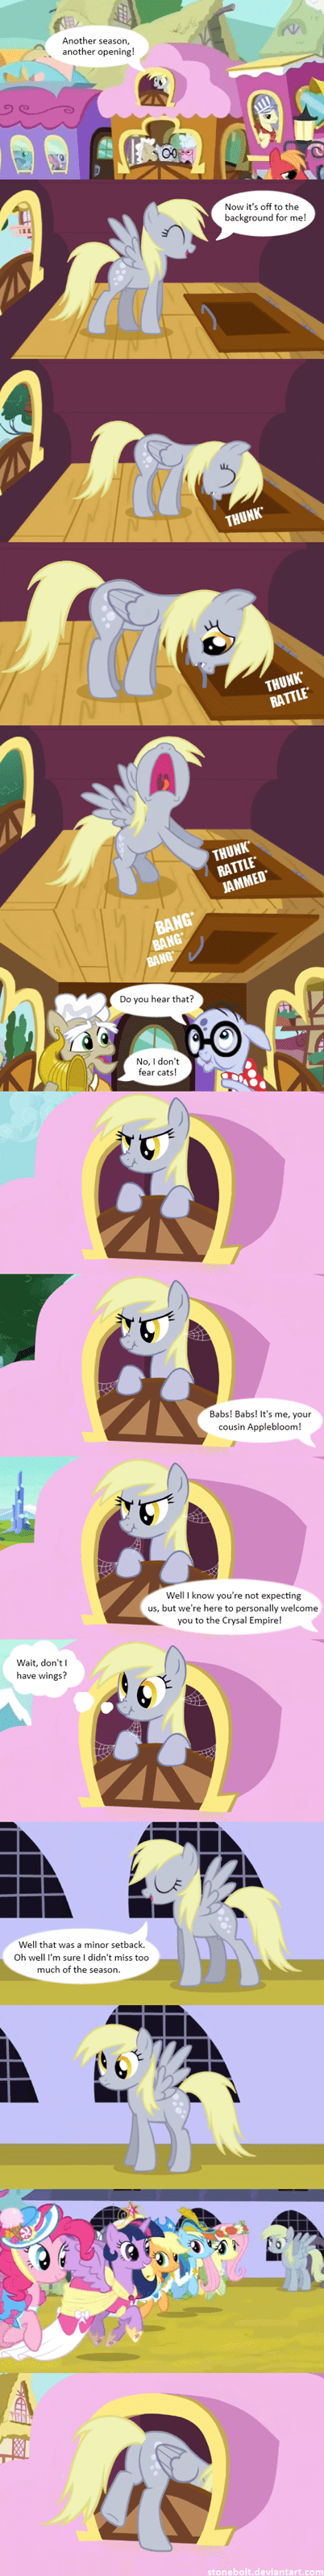 bolt of stone derpy hooves amazing comic comic opening - 7085988608